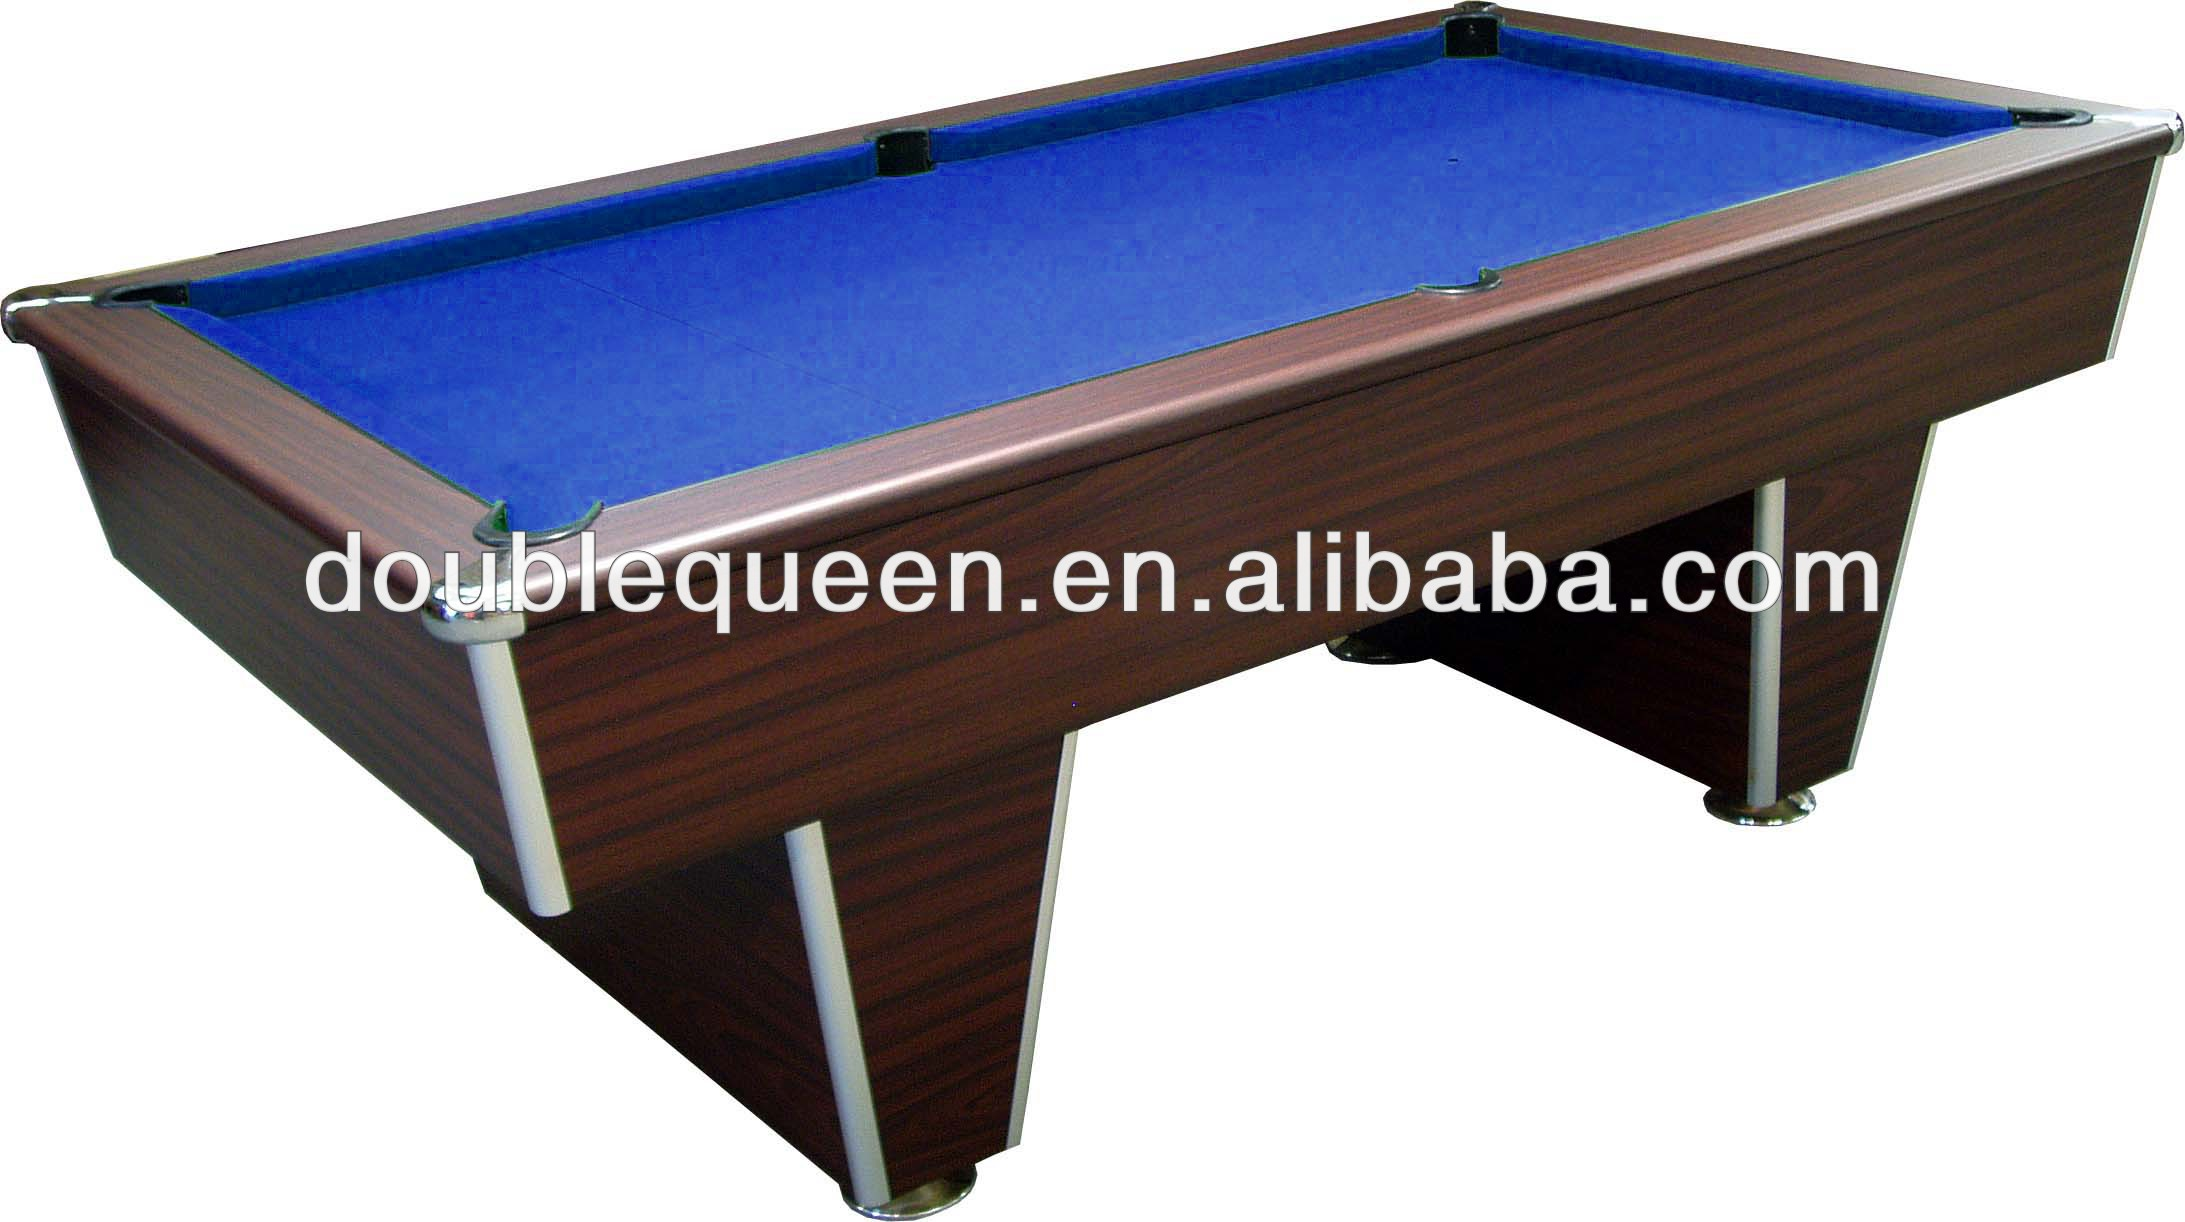 Pool Table Pockets Pool Table Pockets Suppliers And Manufacturers - Pool table with no holes